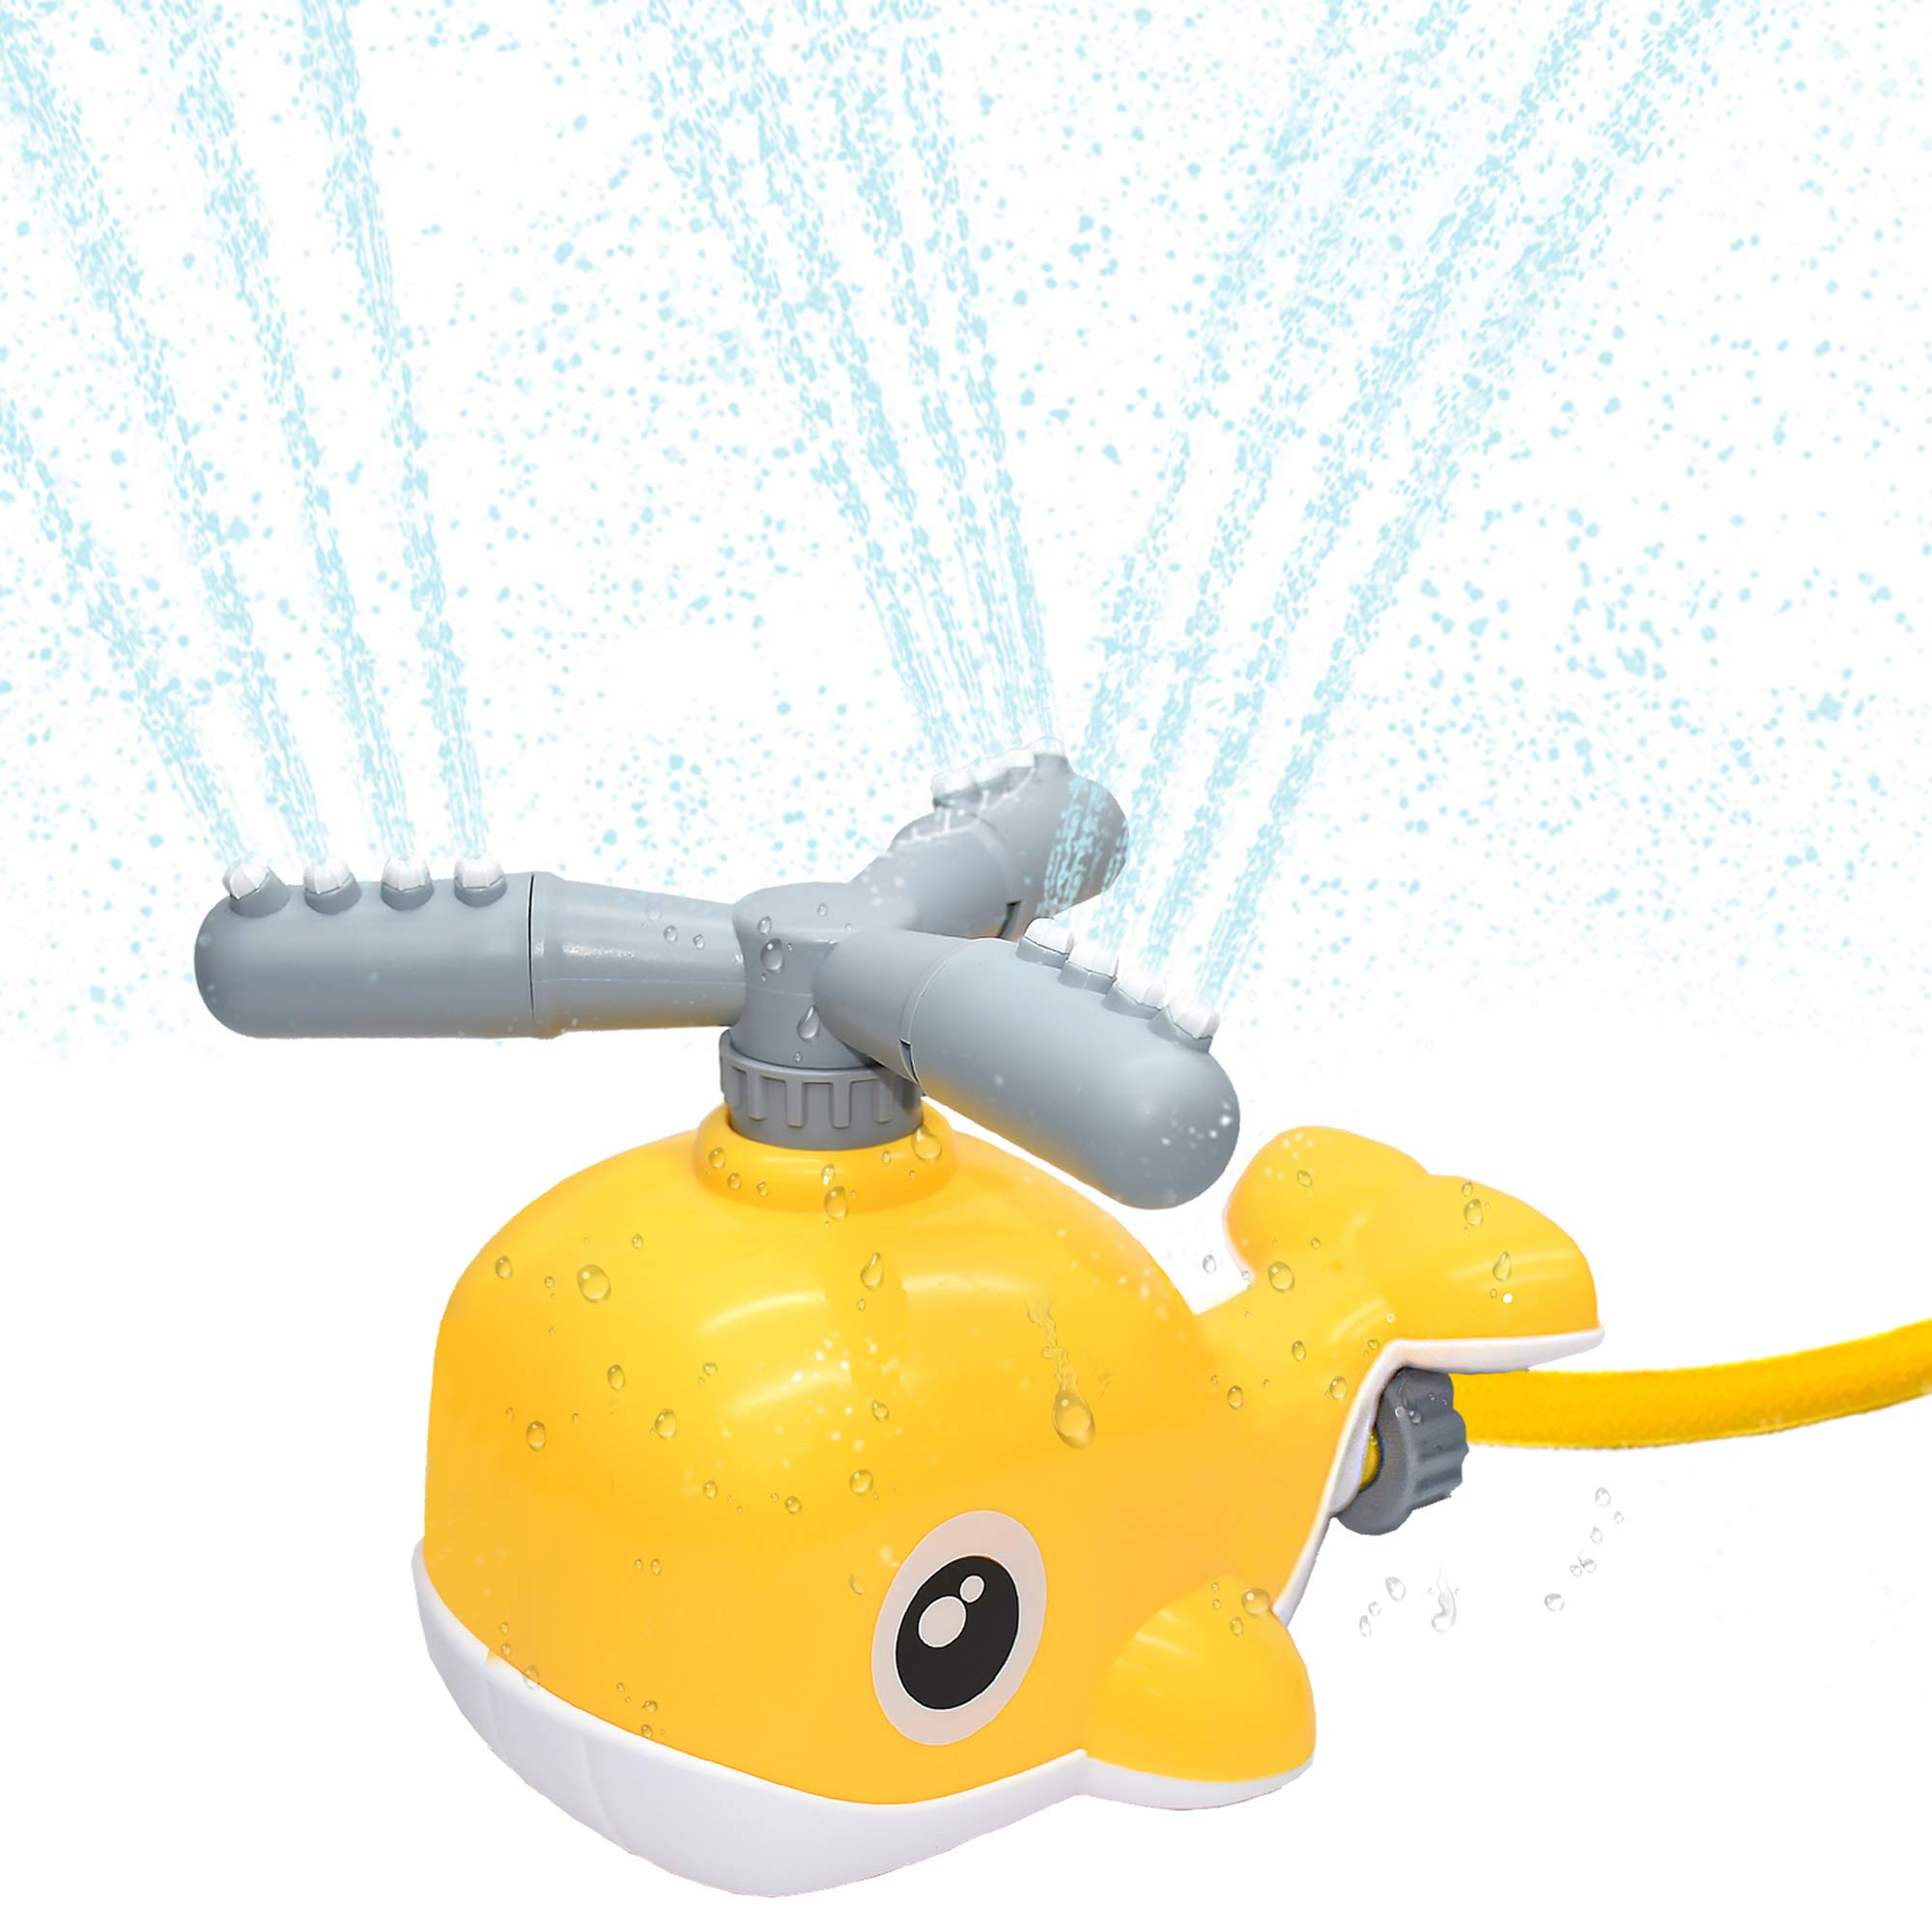 WOT I Sprinkler for Kids, 360 Degree Spinning Whale Sprinkler for Yard and Lawn, Outdoor Water Toys Fun Summer Play Gift for Boys Girls Adults Pets